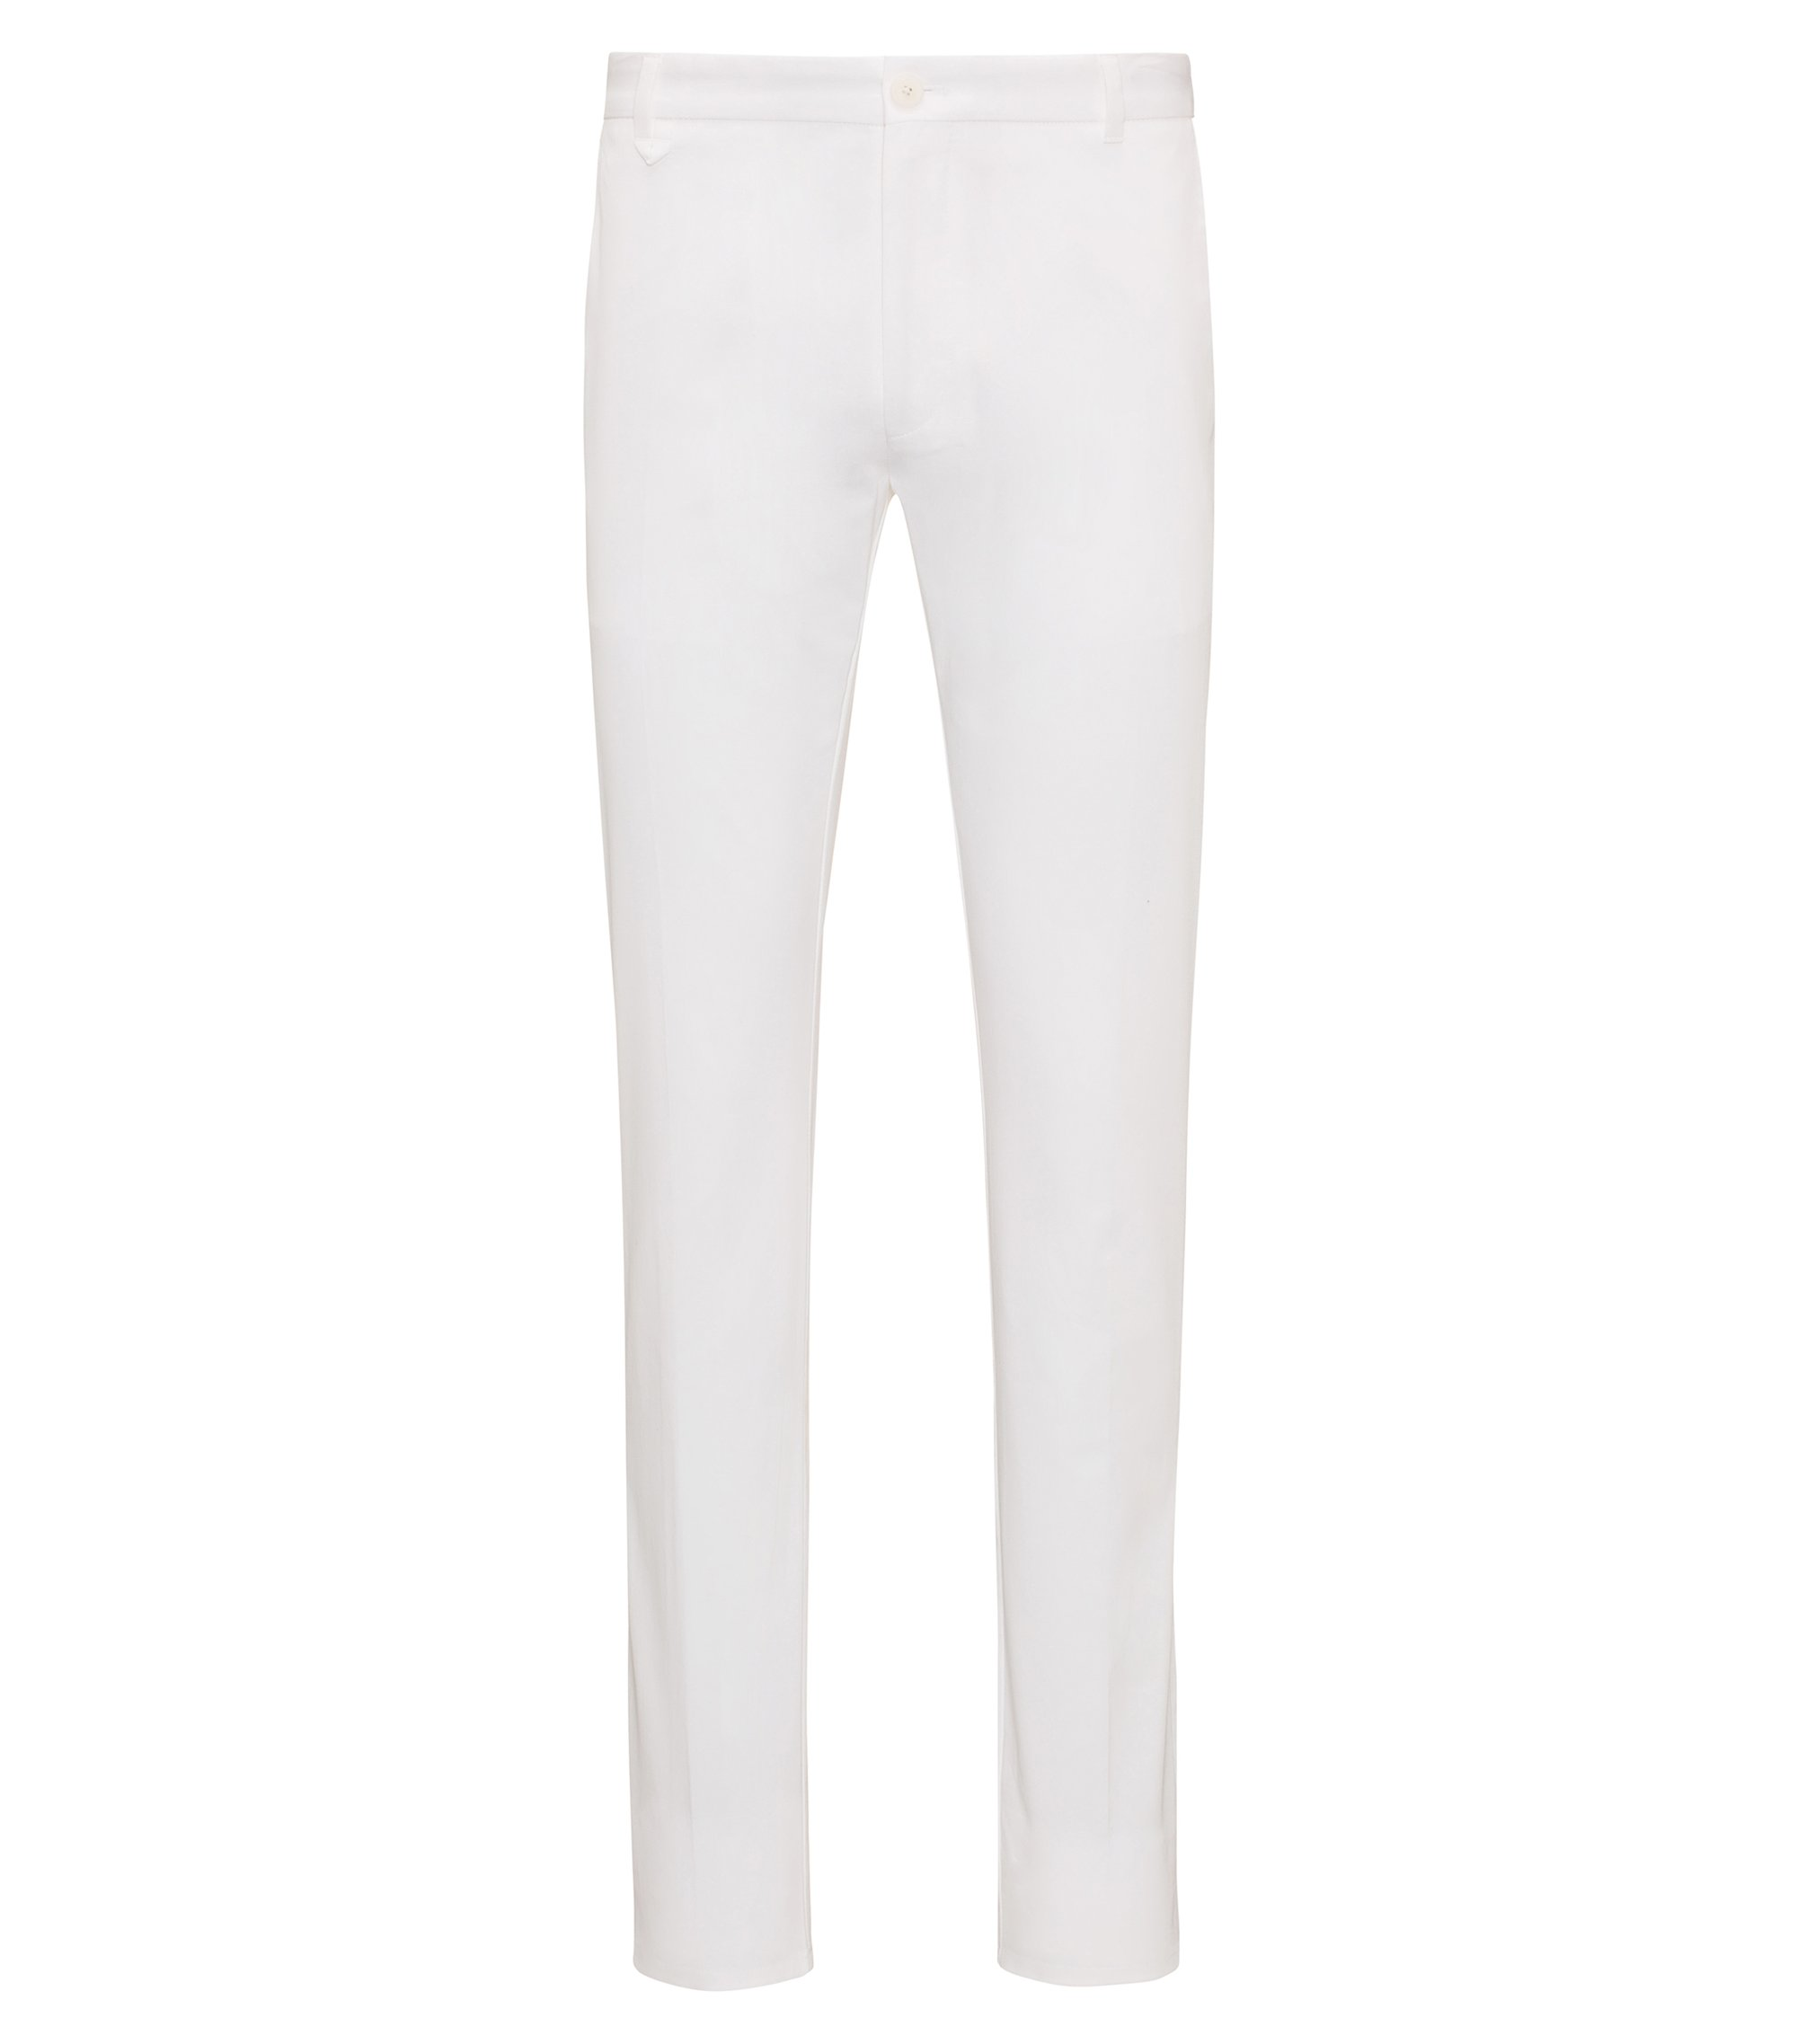 Pantalon Extra Slim Fit en coton stretch, Blanc